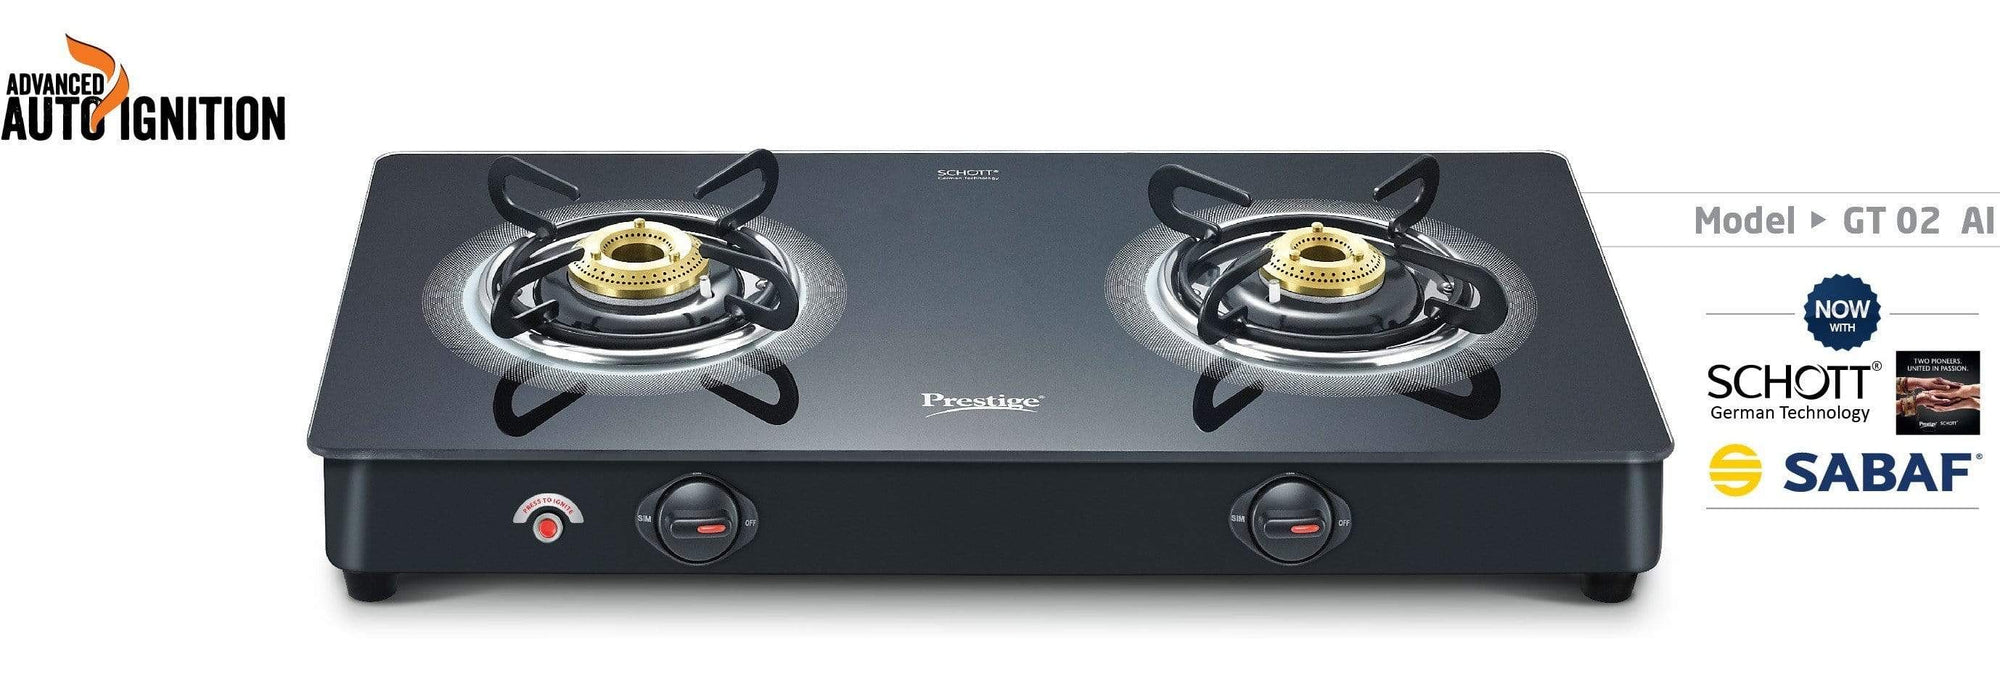 Prestige Royale Plus Schott Glass 2 Burner Gas Stove, Auto Ignition - KITCHEN MART